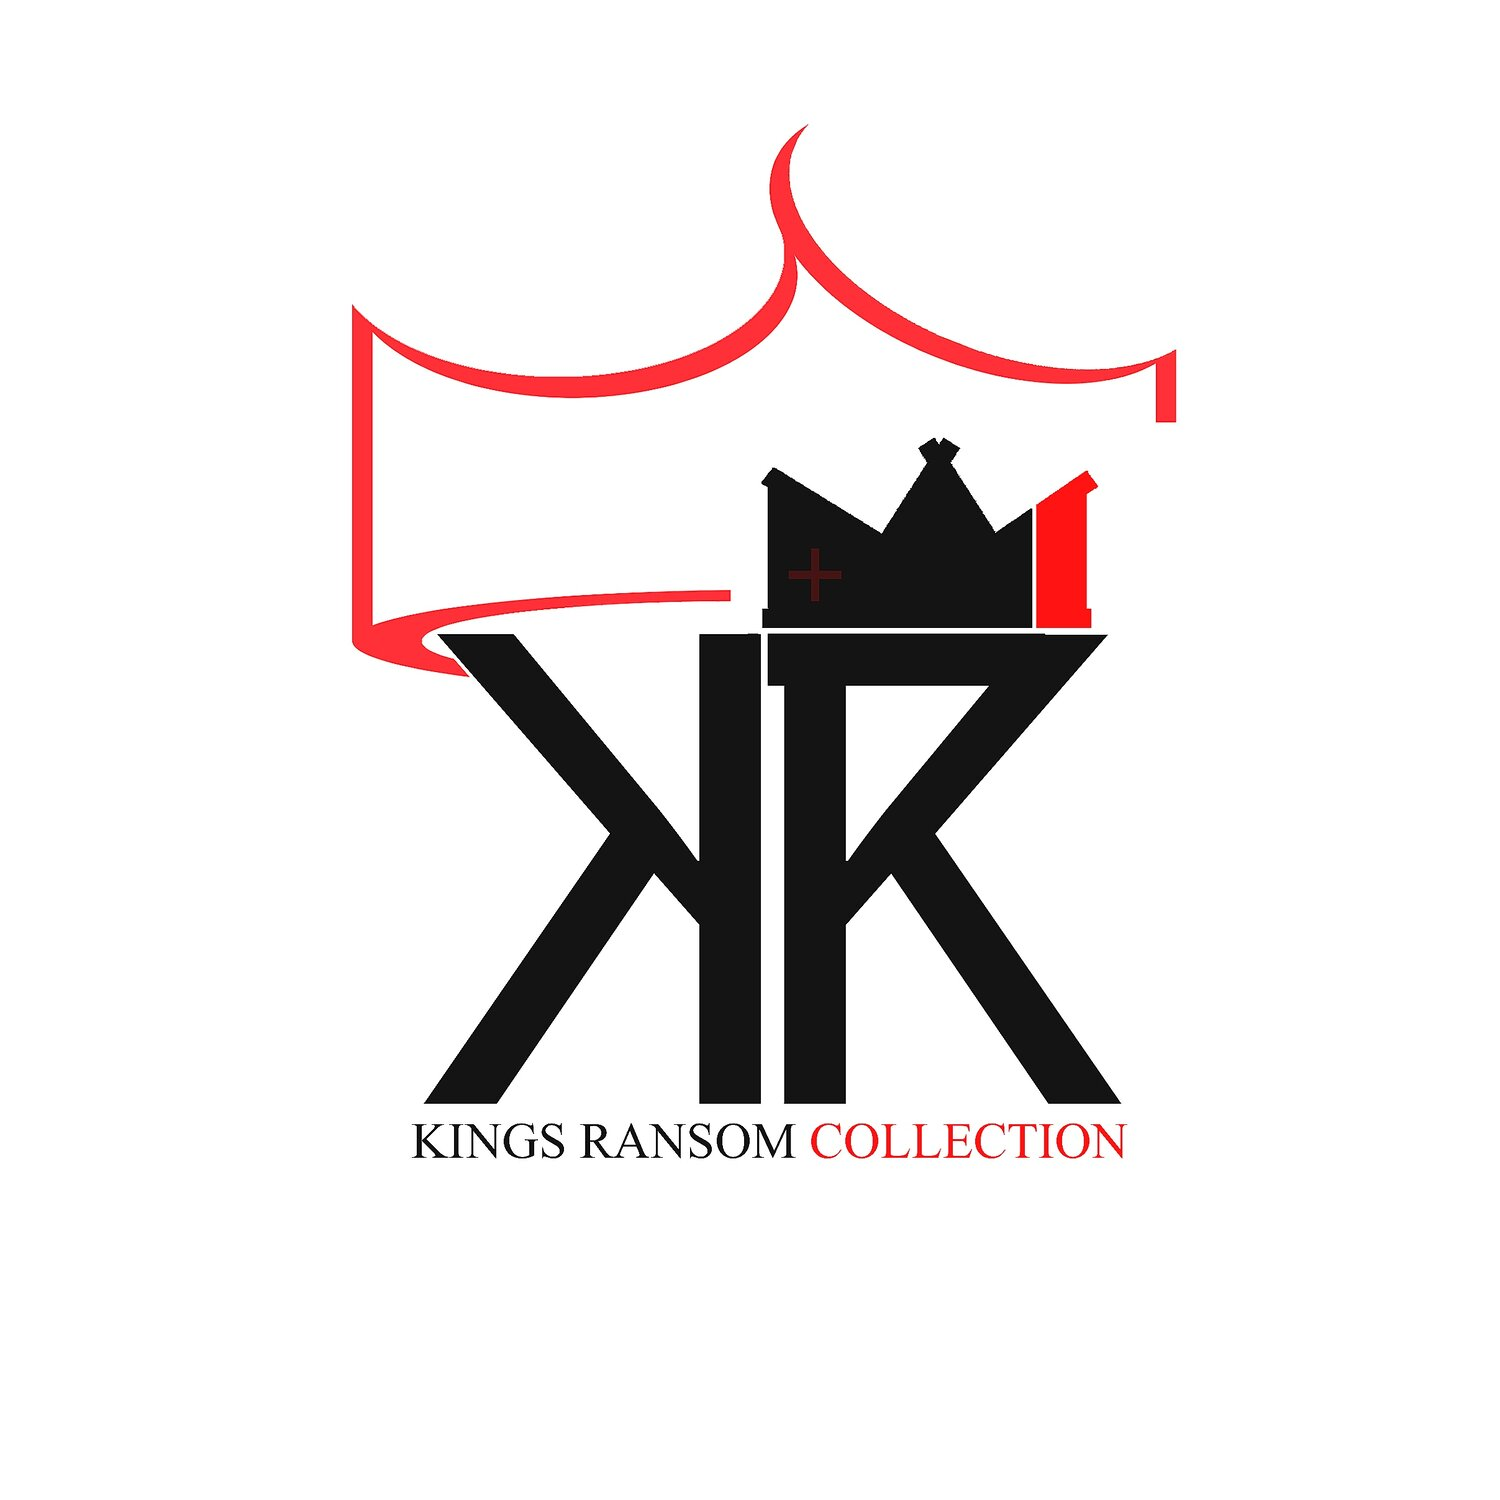 Kings Ransom Collection Clothing